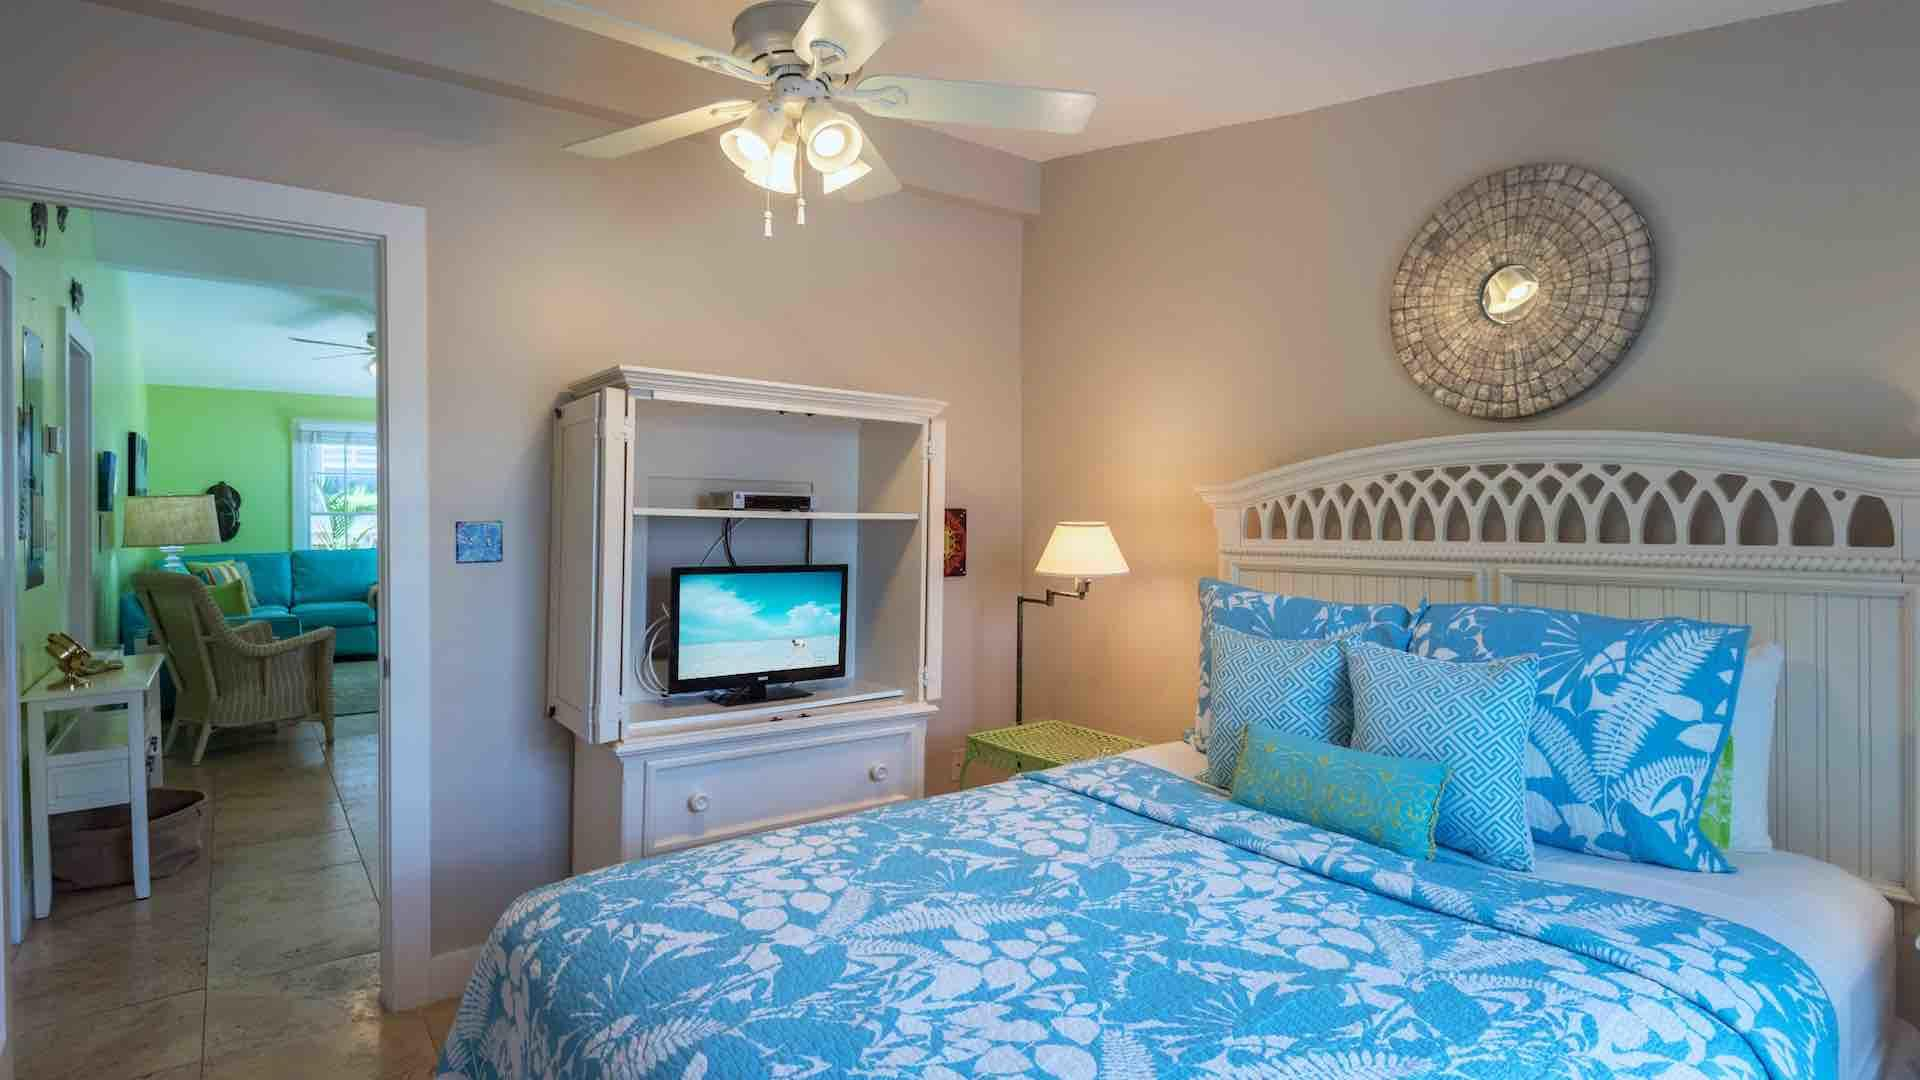 The second bedroom has an overhead fan and a flat screen TV...